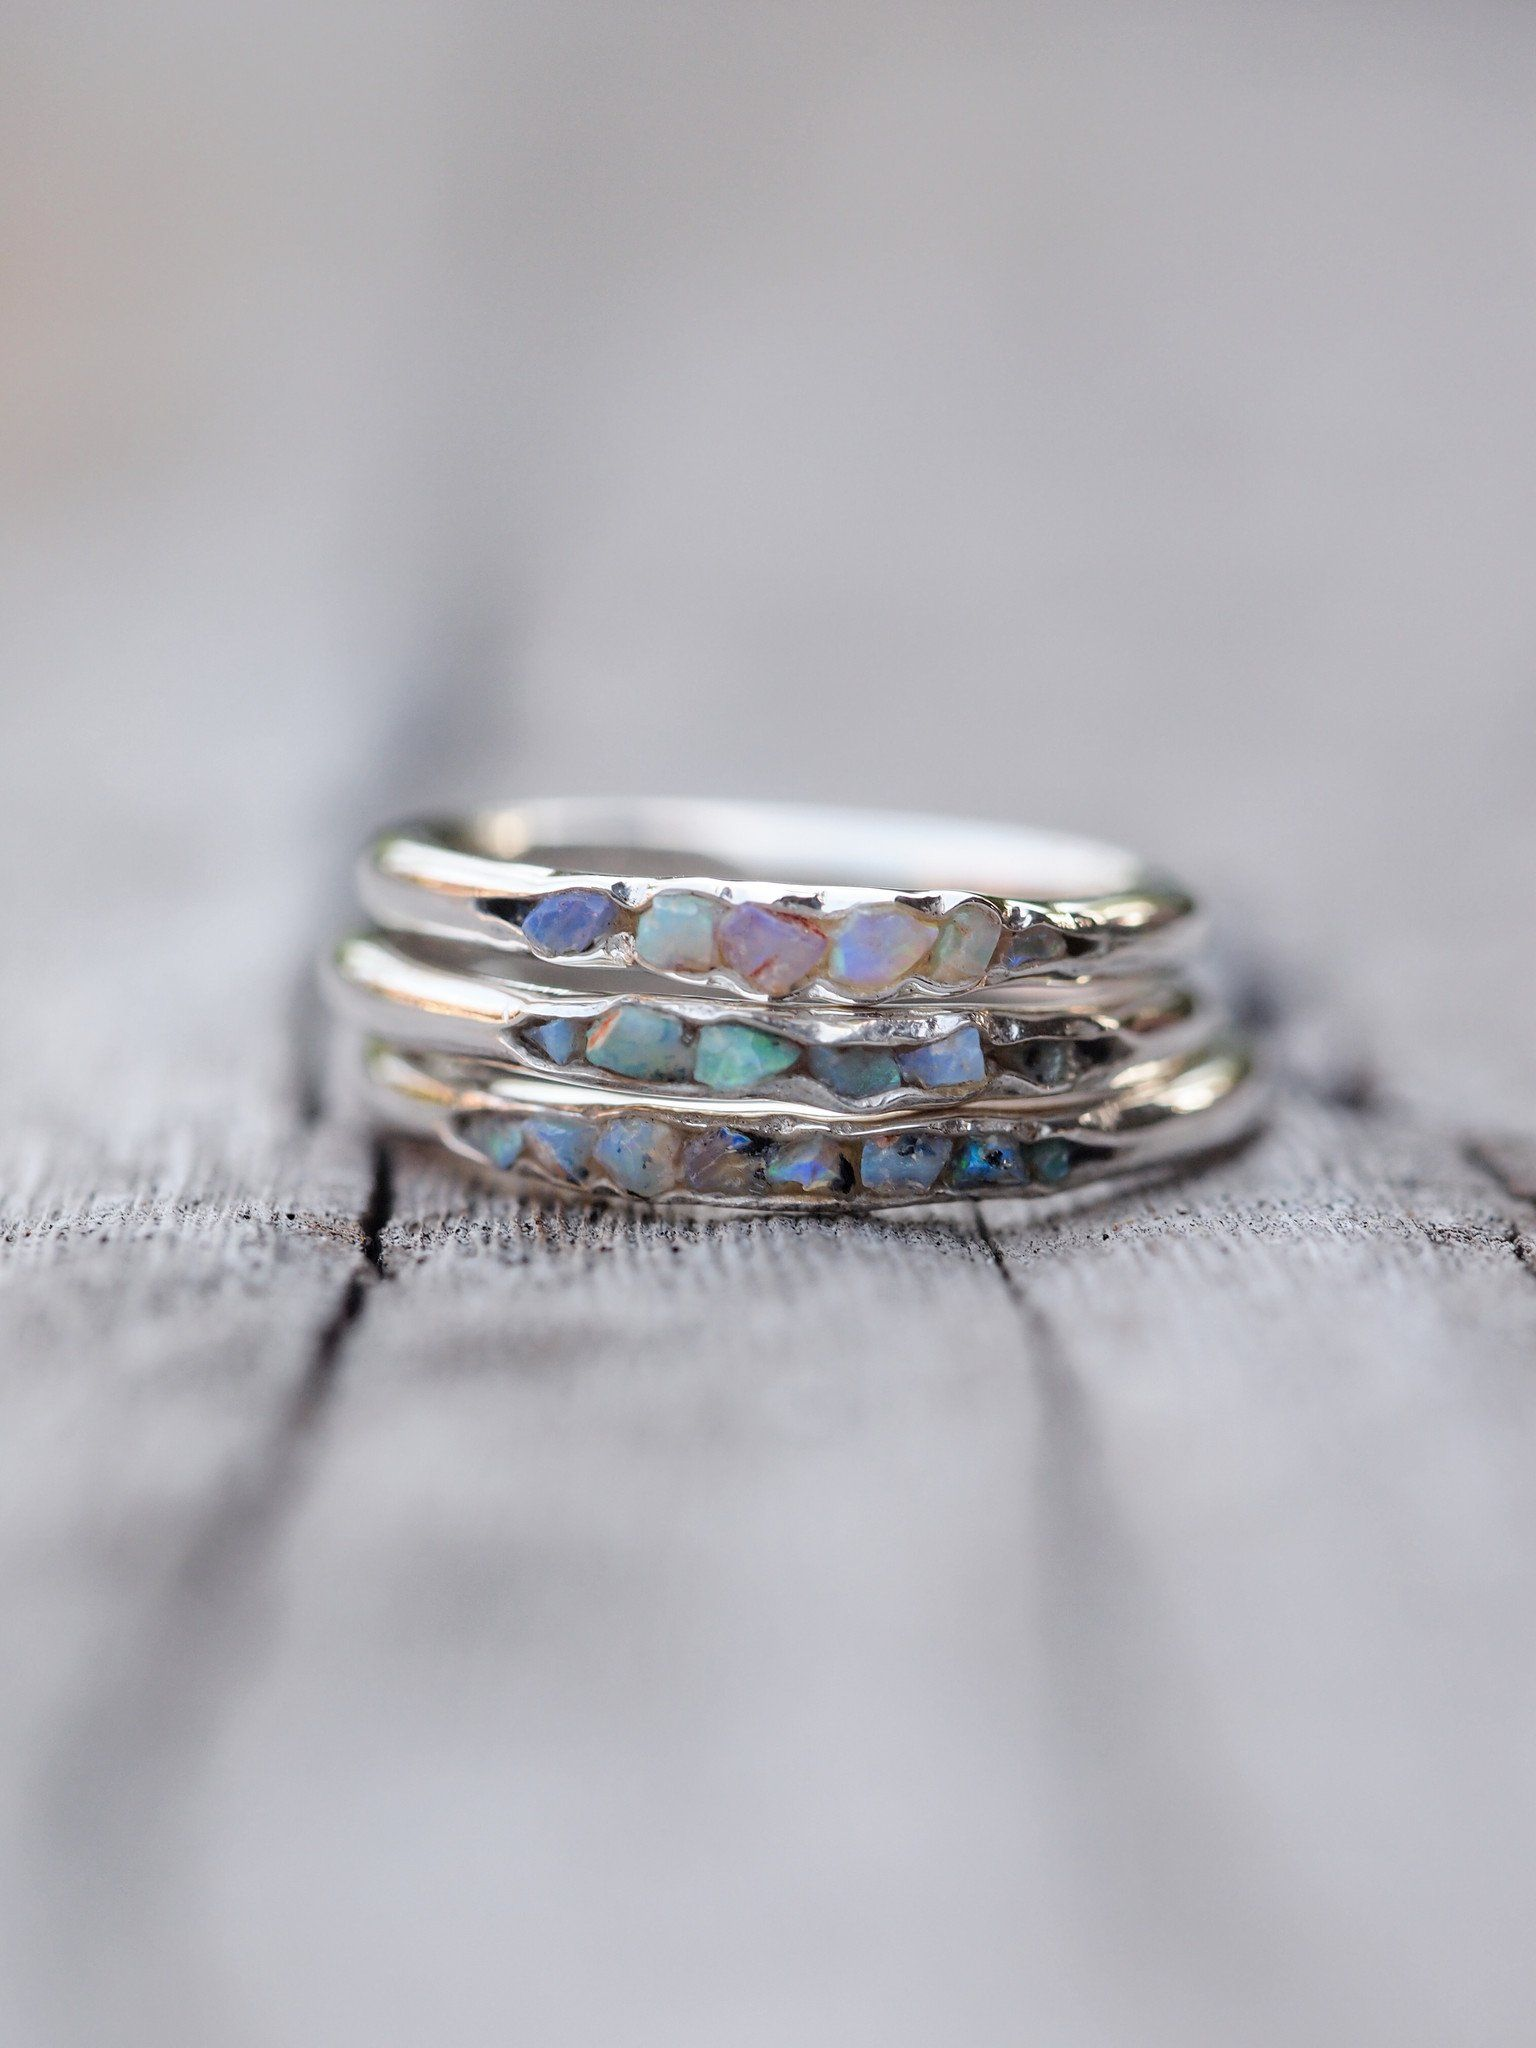 june stackable october crystals bands eternity alexandrite silver birthstone rings jewelry sterling wedding band